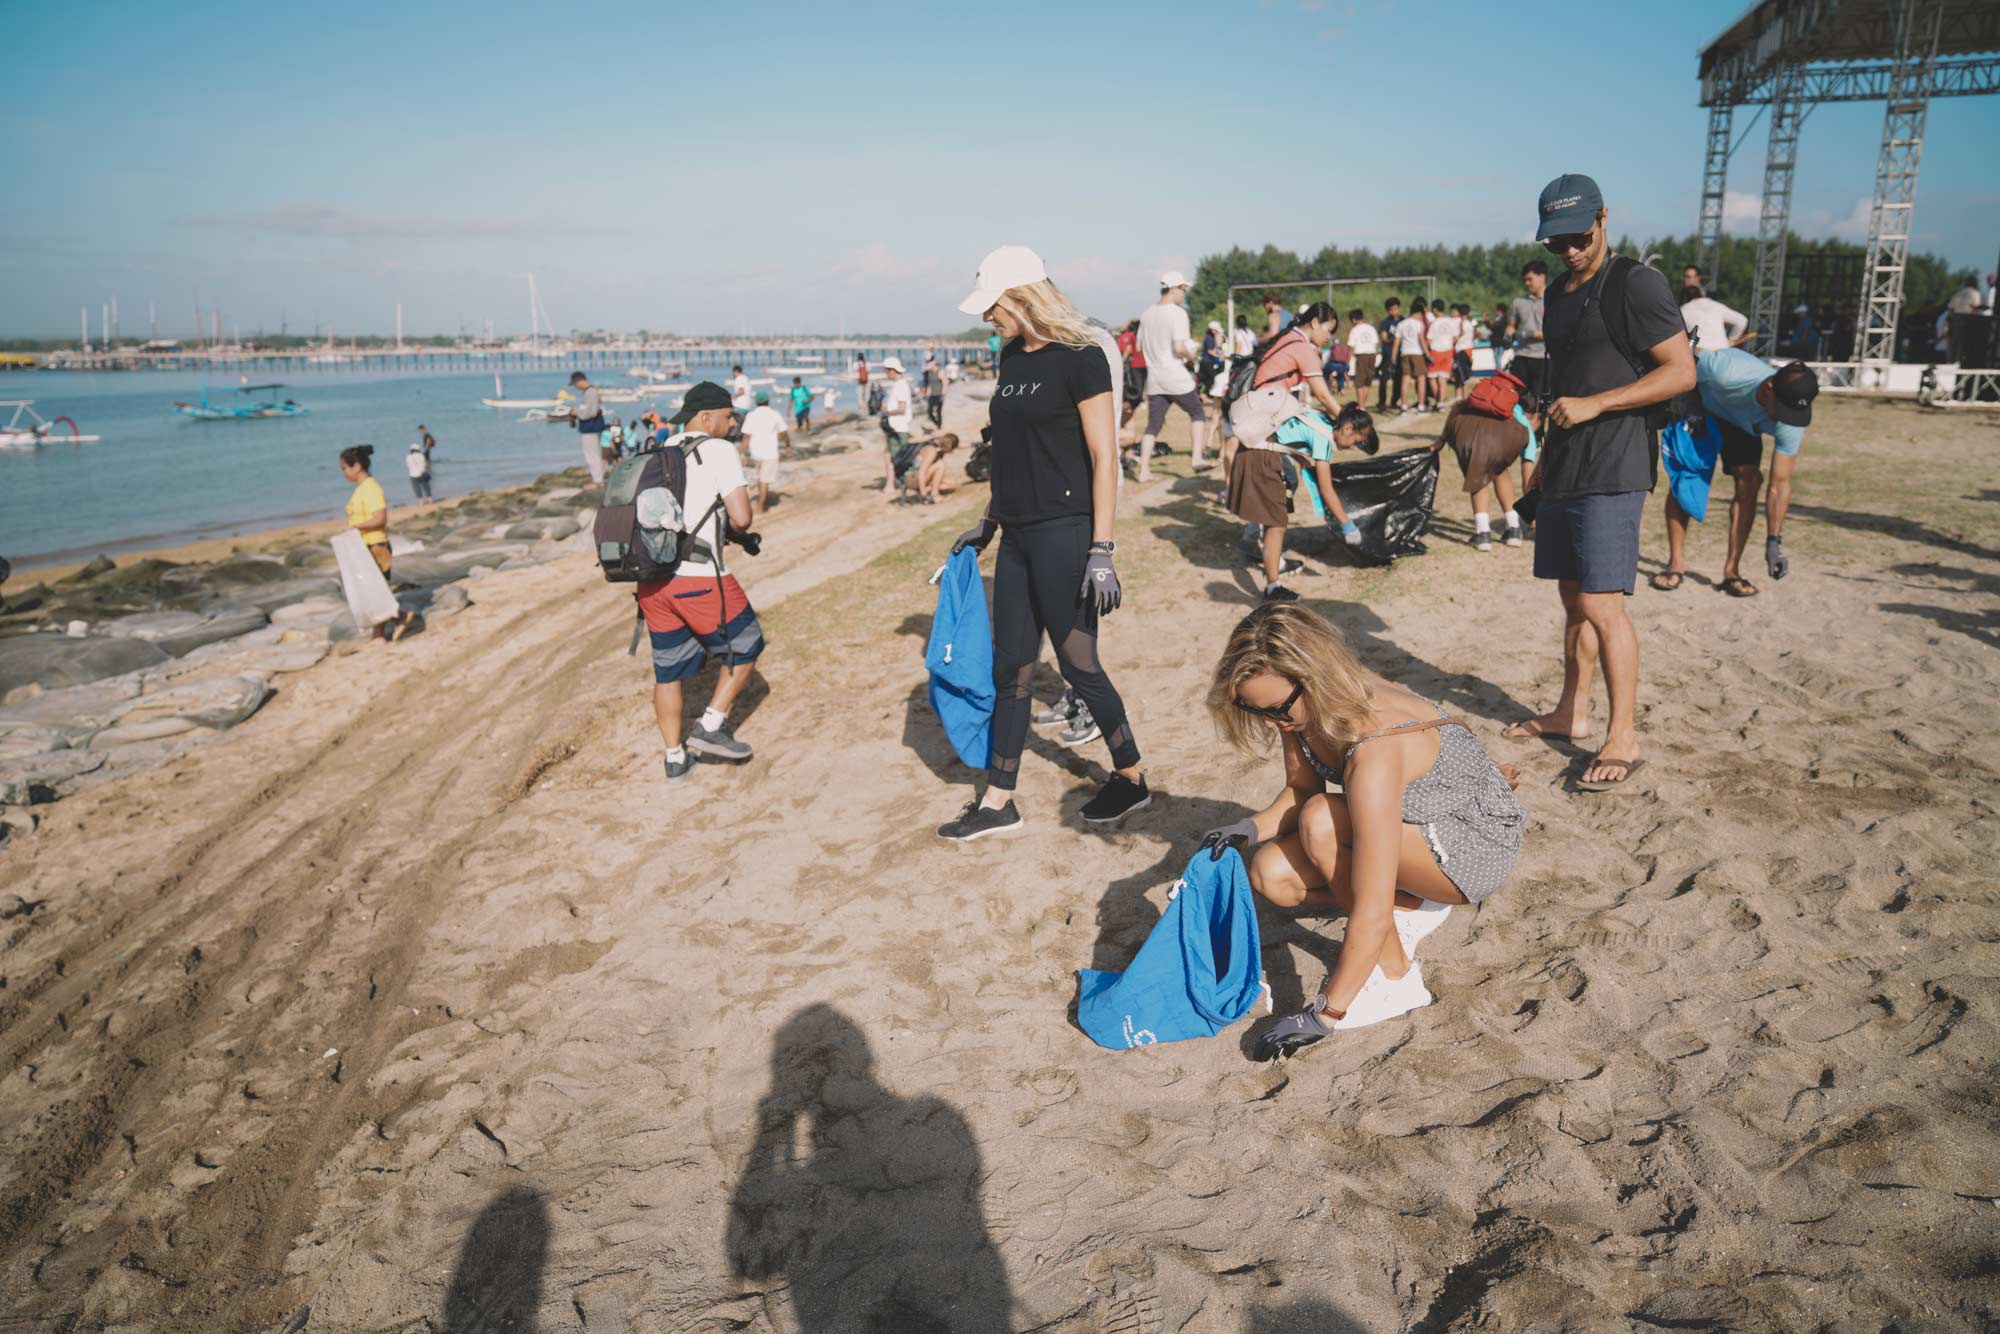 Surfing and ocean conservancy bring people from all walks of life together to play their part in cleaning up the beach